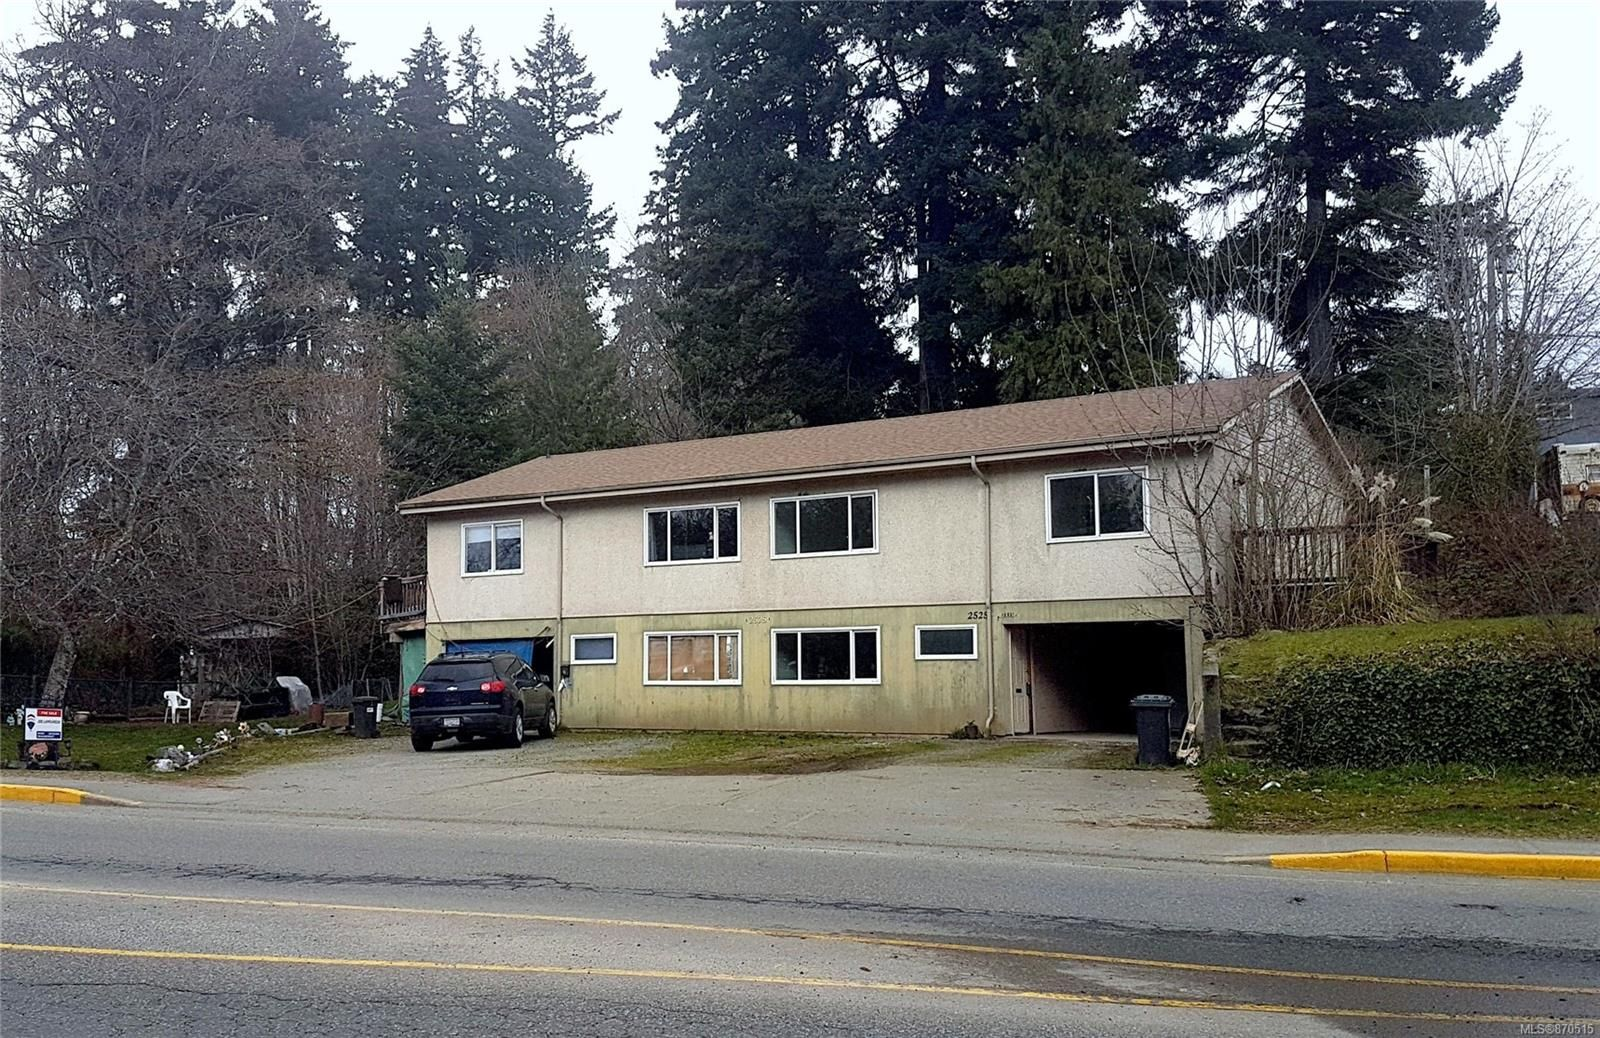 Main Photo: 2525 3rd Ave in : PA Port Alberni Full Duplex for sale (Port Alberni)  : MLS®# 870515